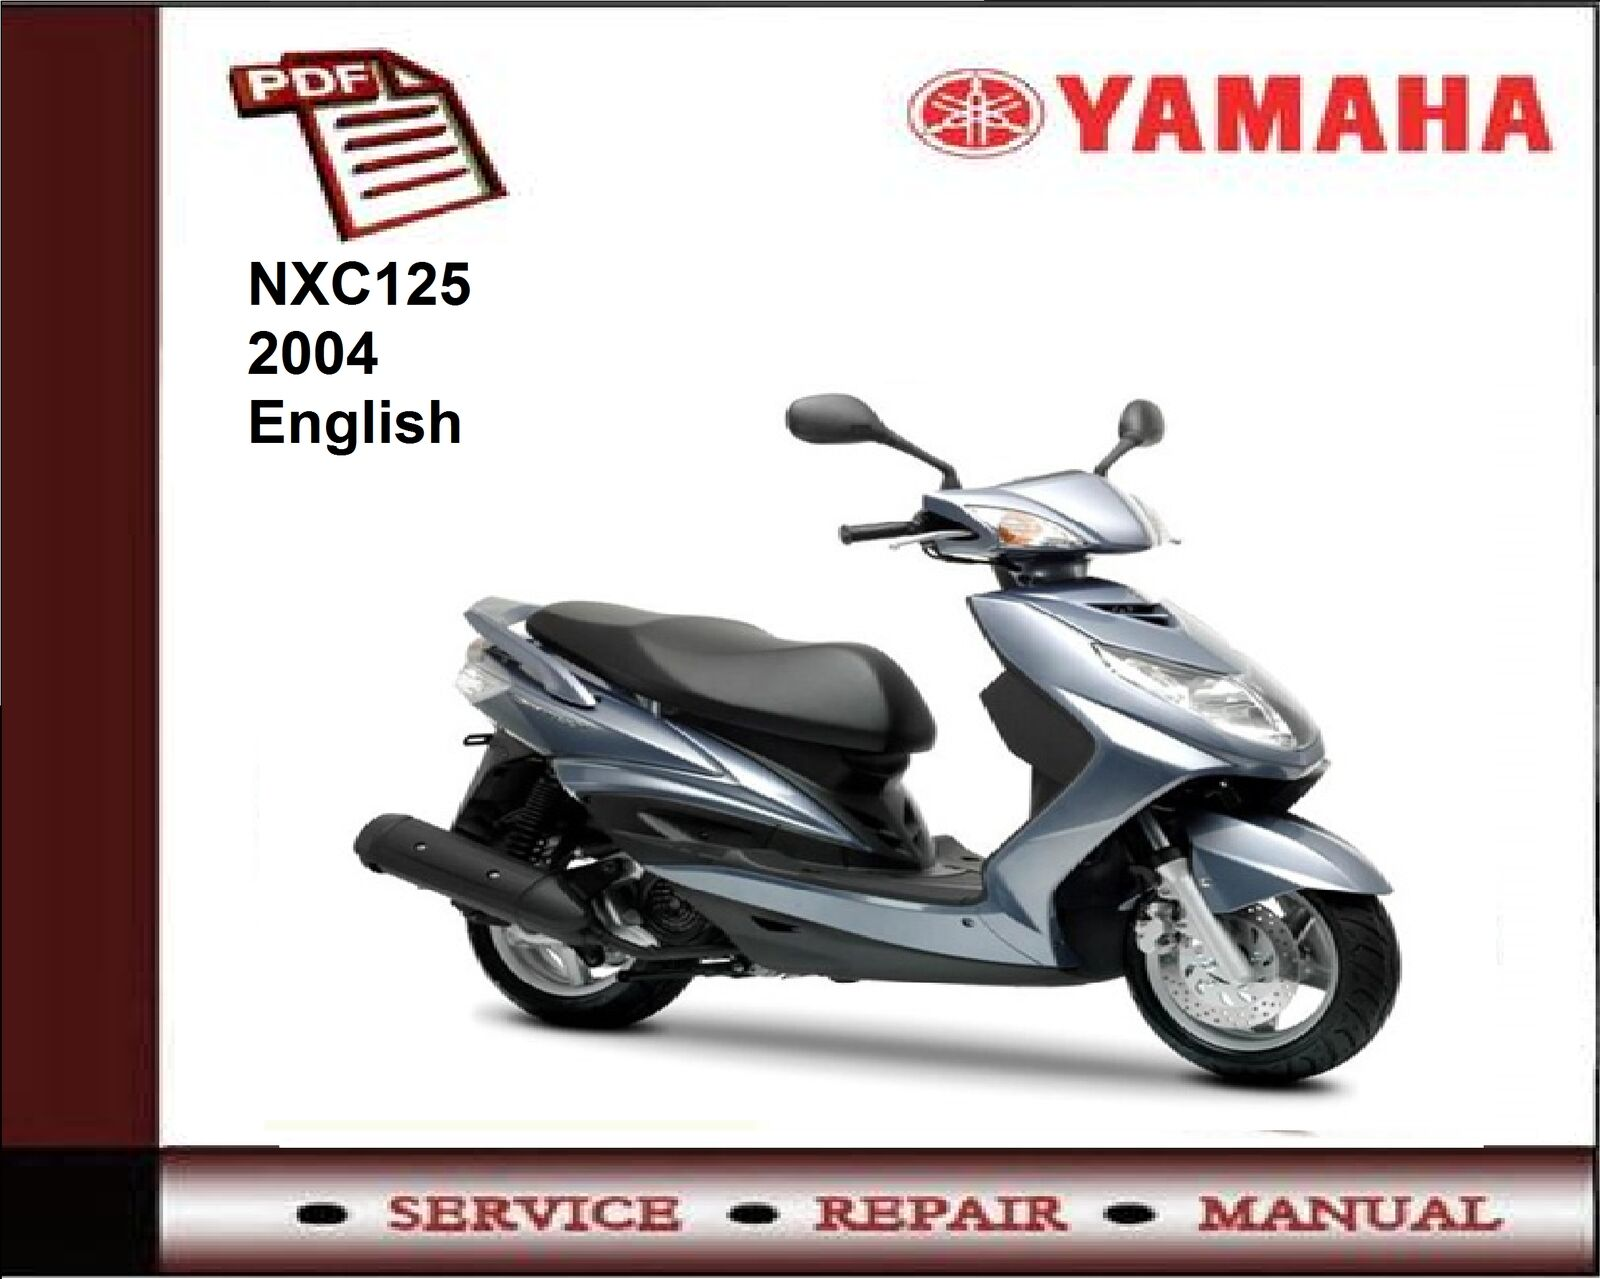 Yamaha NXC125 NXC 125 2004 Workshop Service Repair Manual 1 of 1FREE  Shipping ...